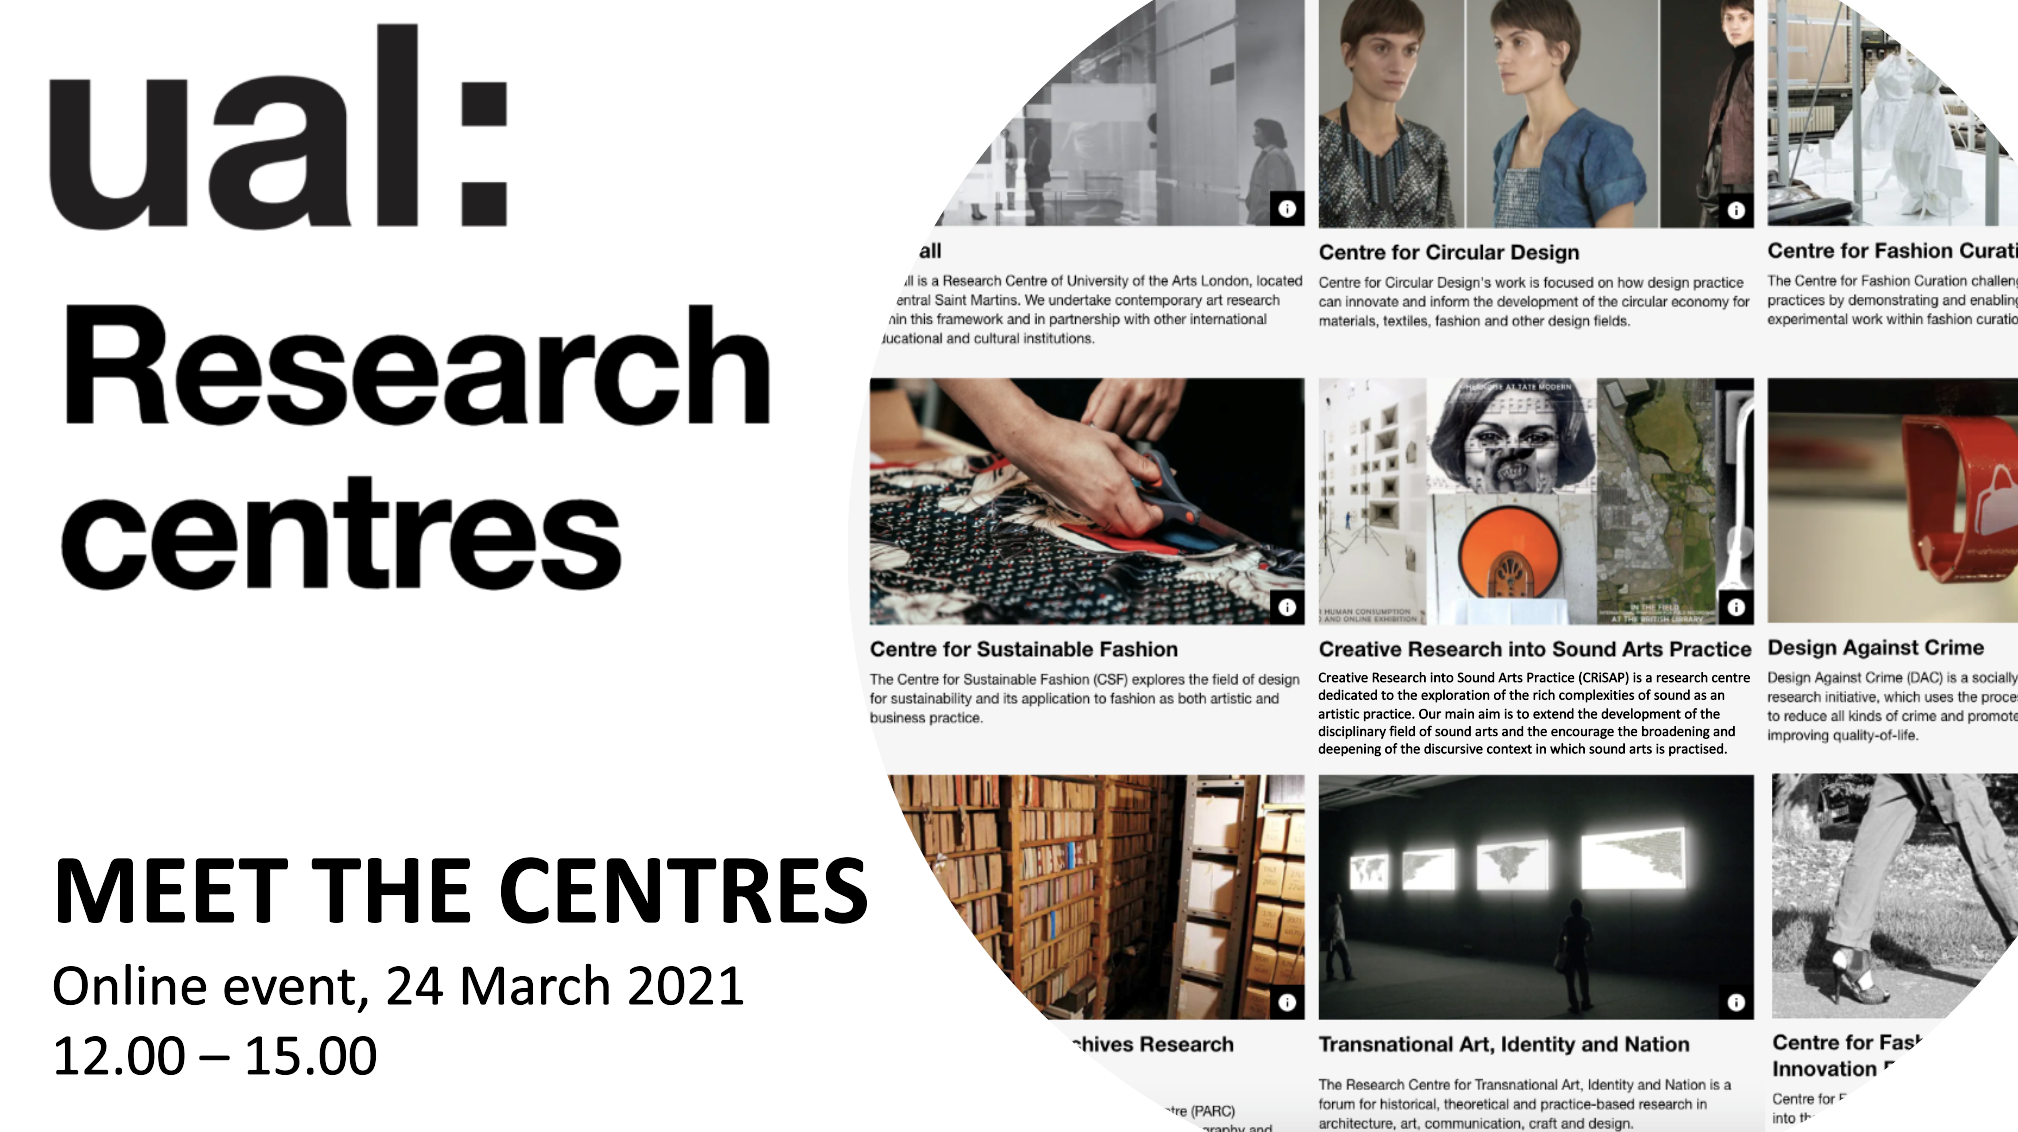 """UAL Research Centres: Meet the Centres"" poster with images for each centre"